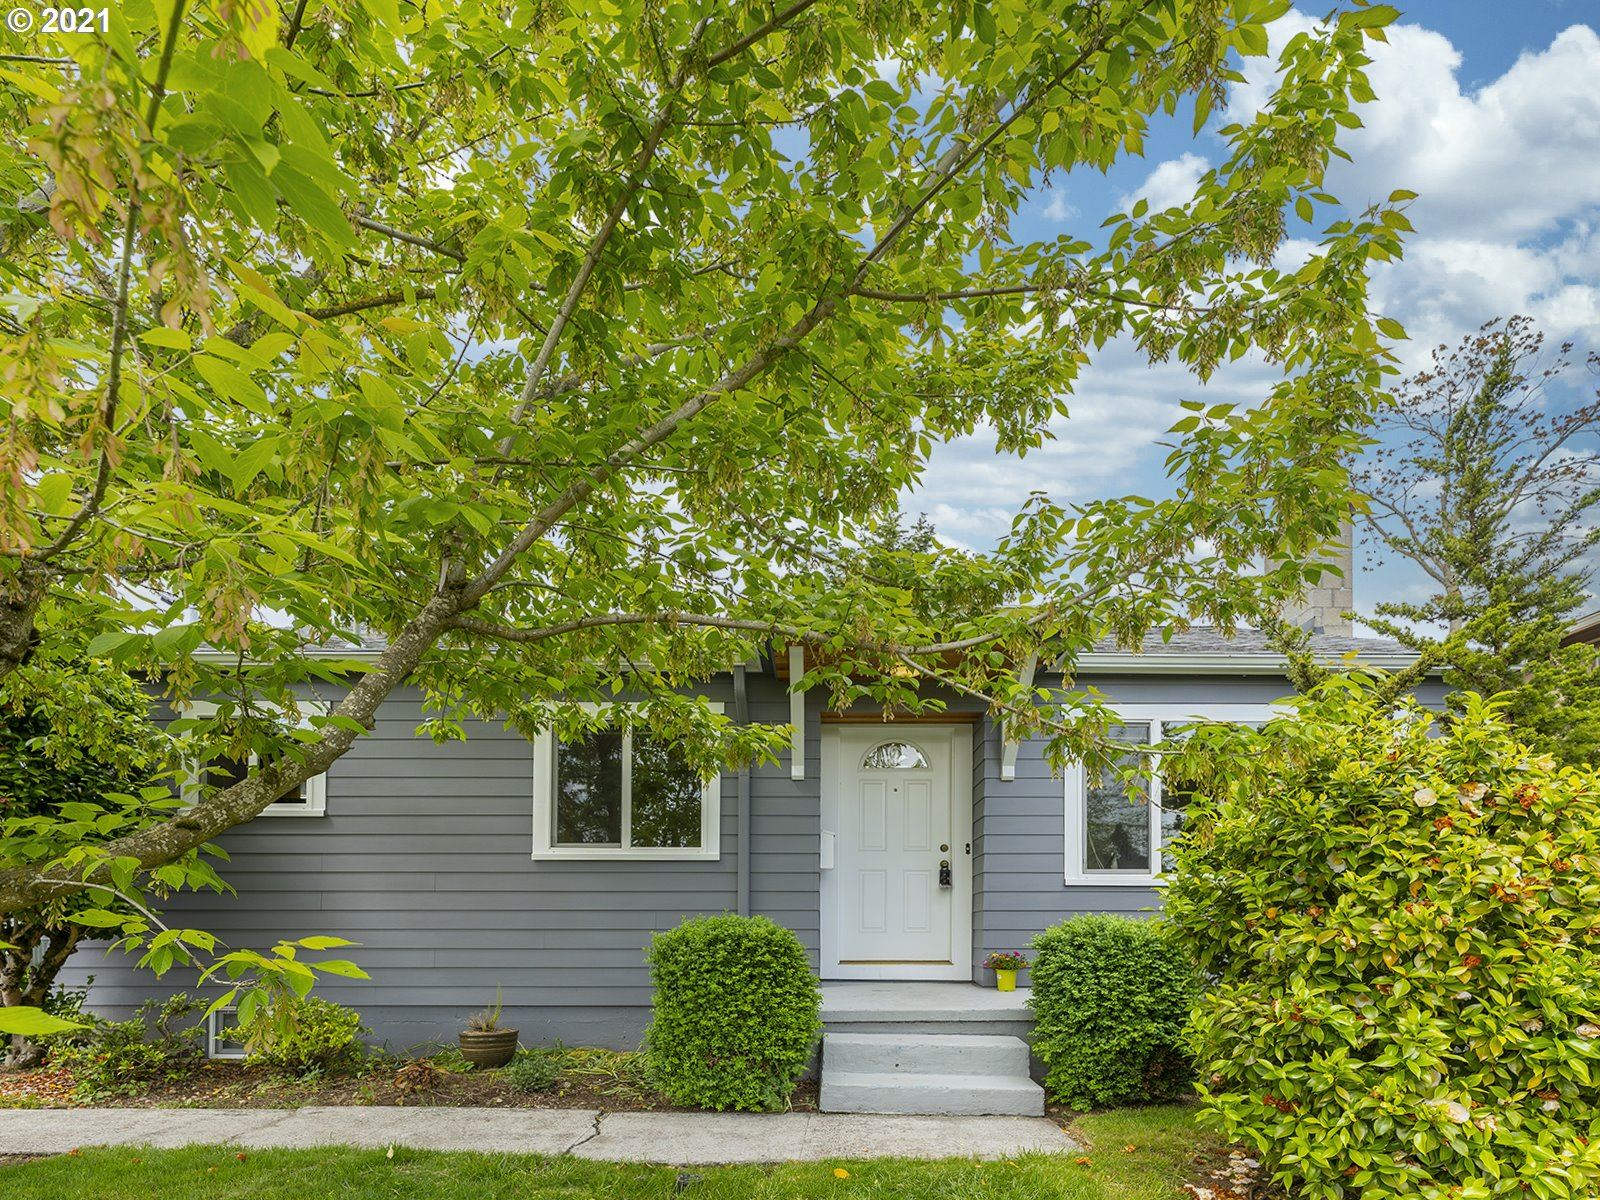 205 NE 73RD AVE, Portland, OR 97213 - MLS#: 21304089